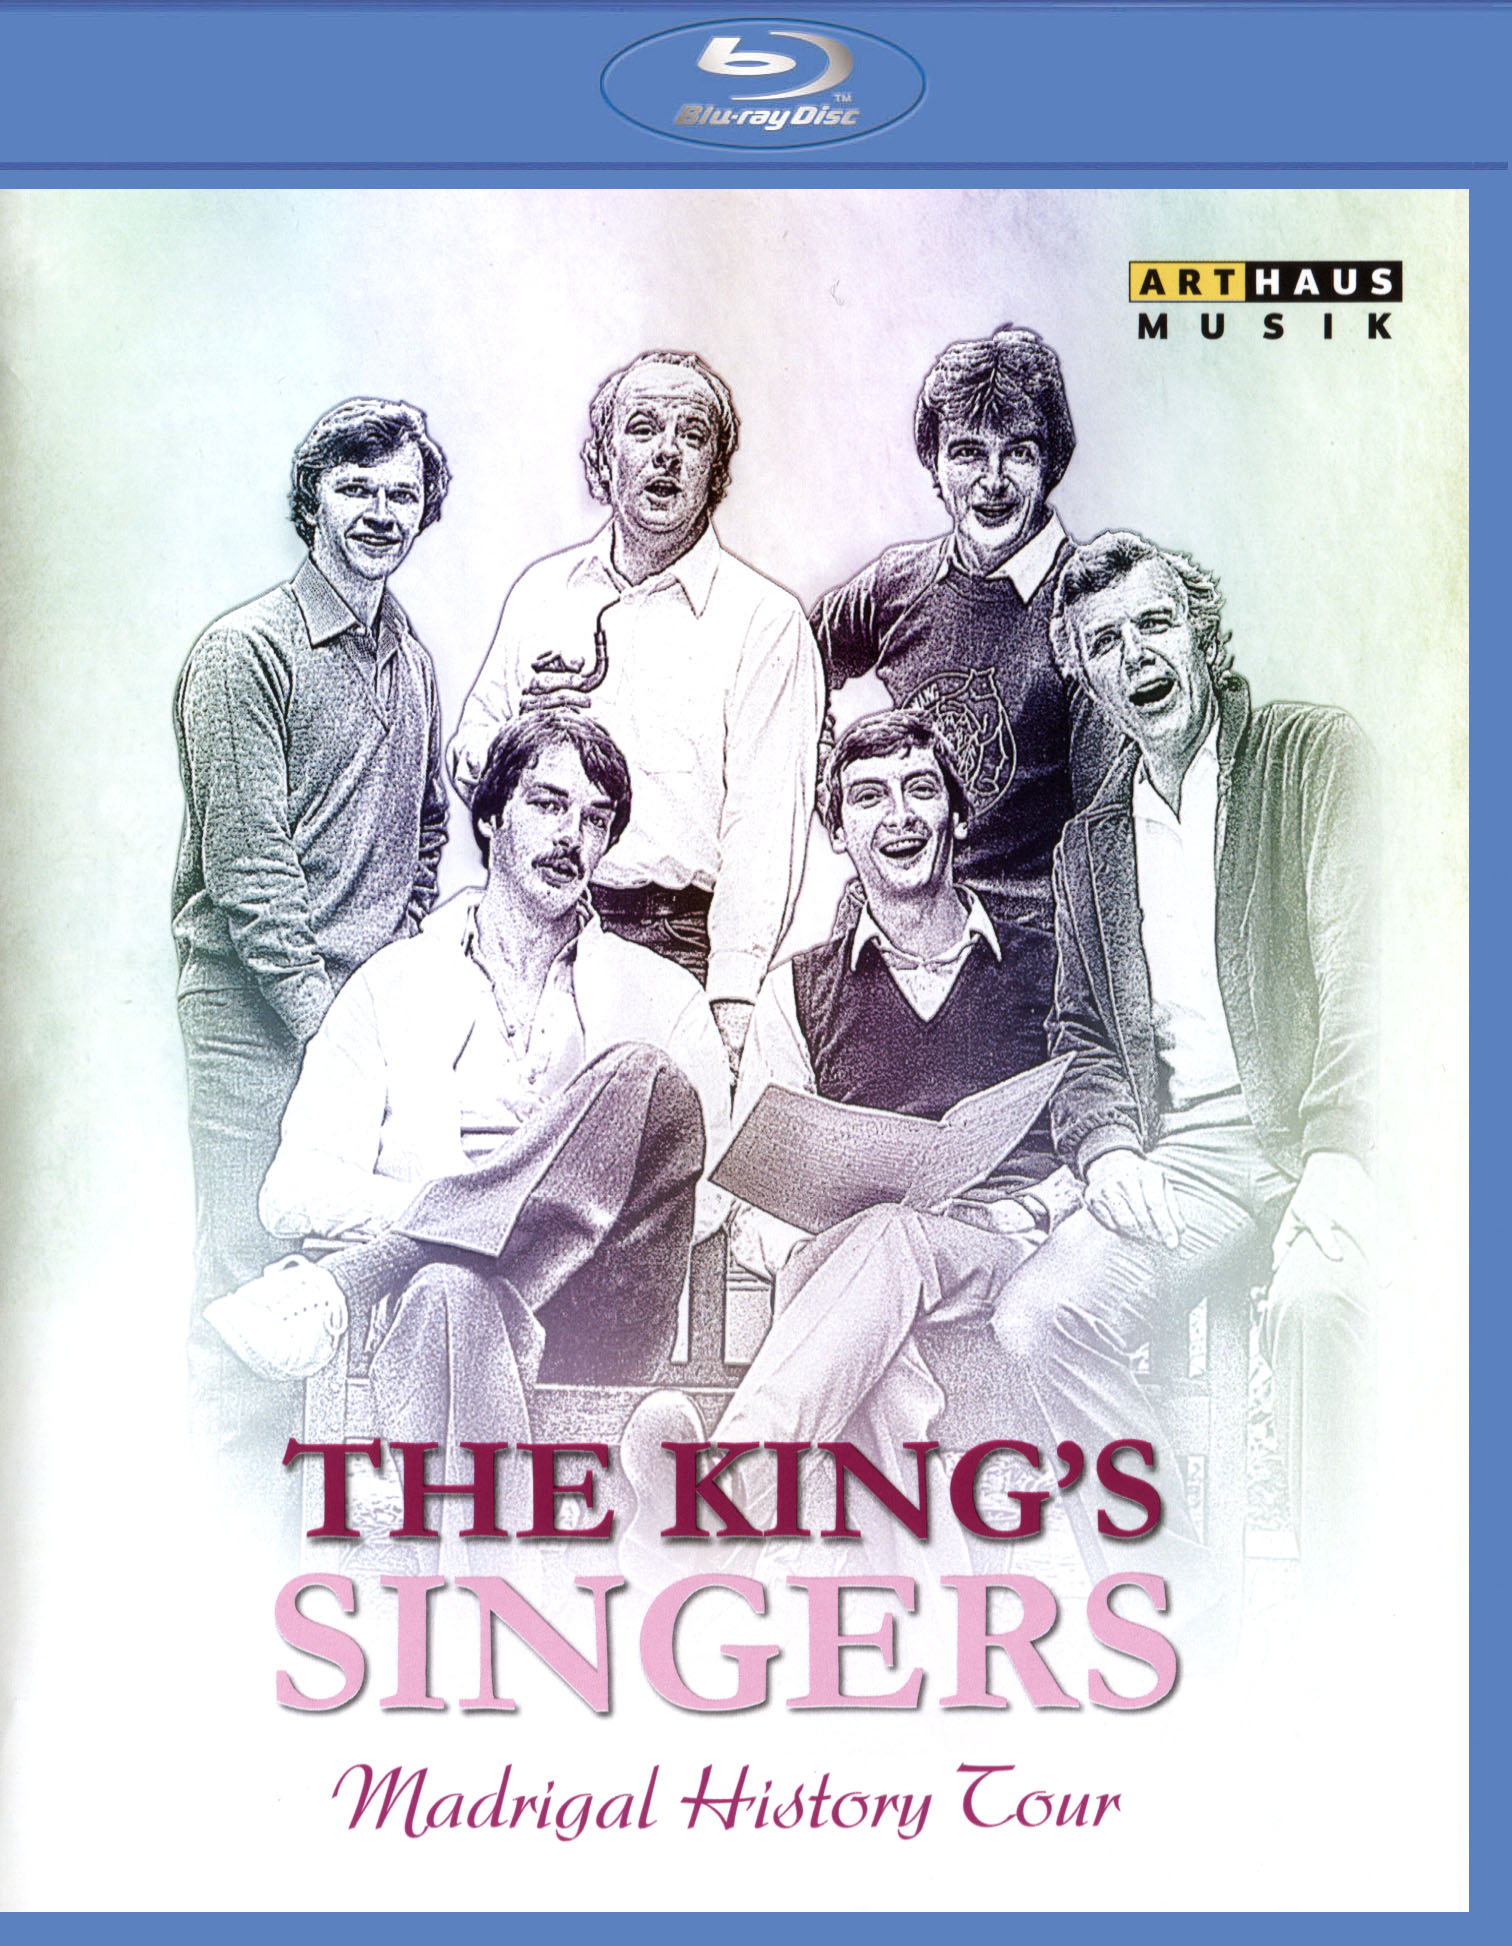 The King's Singers: Madrigal History Tour